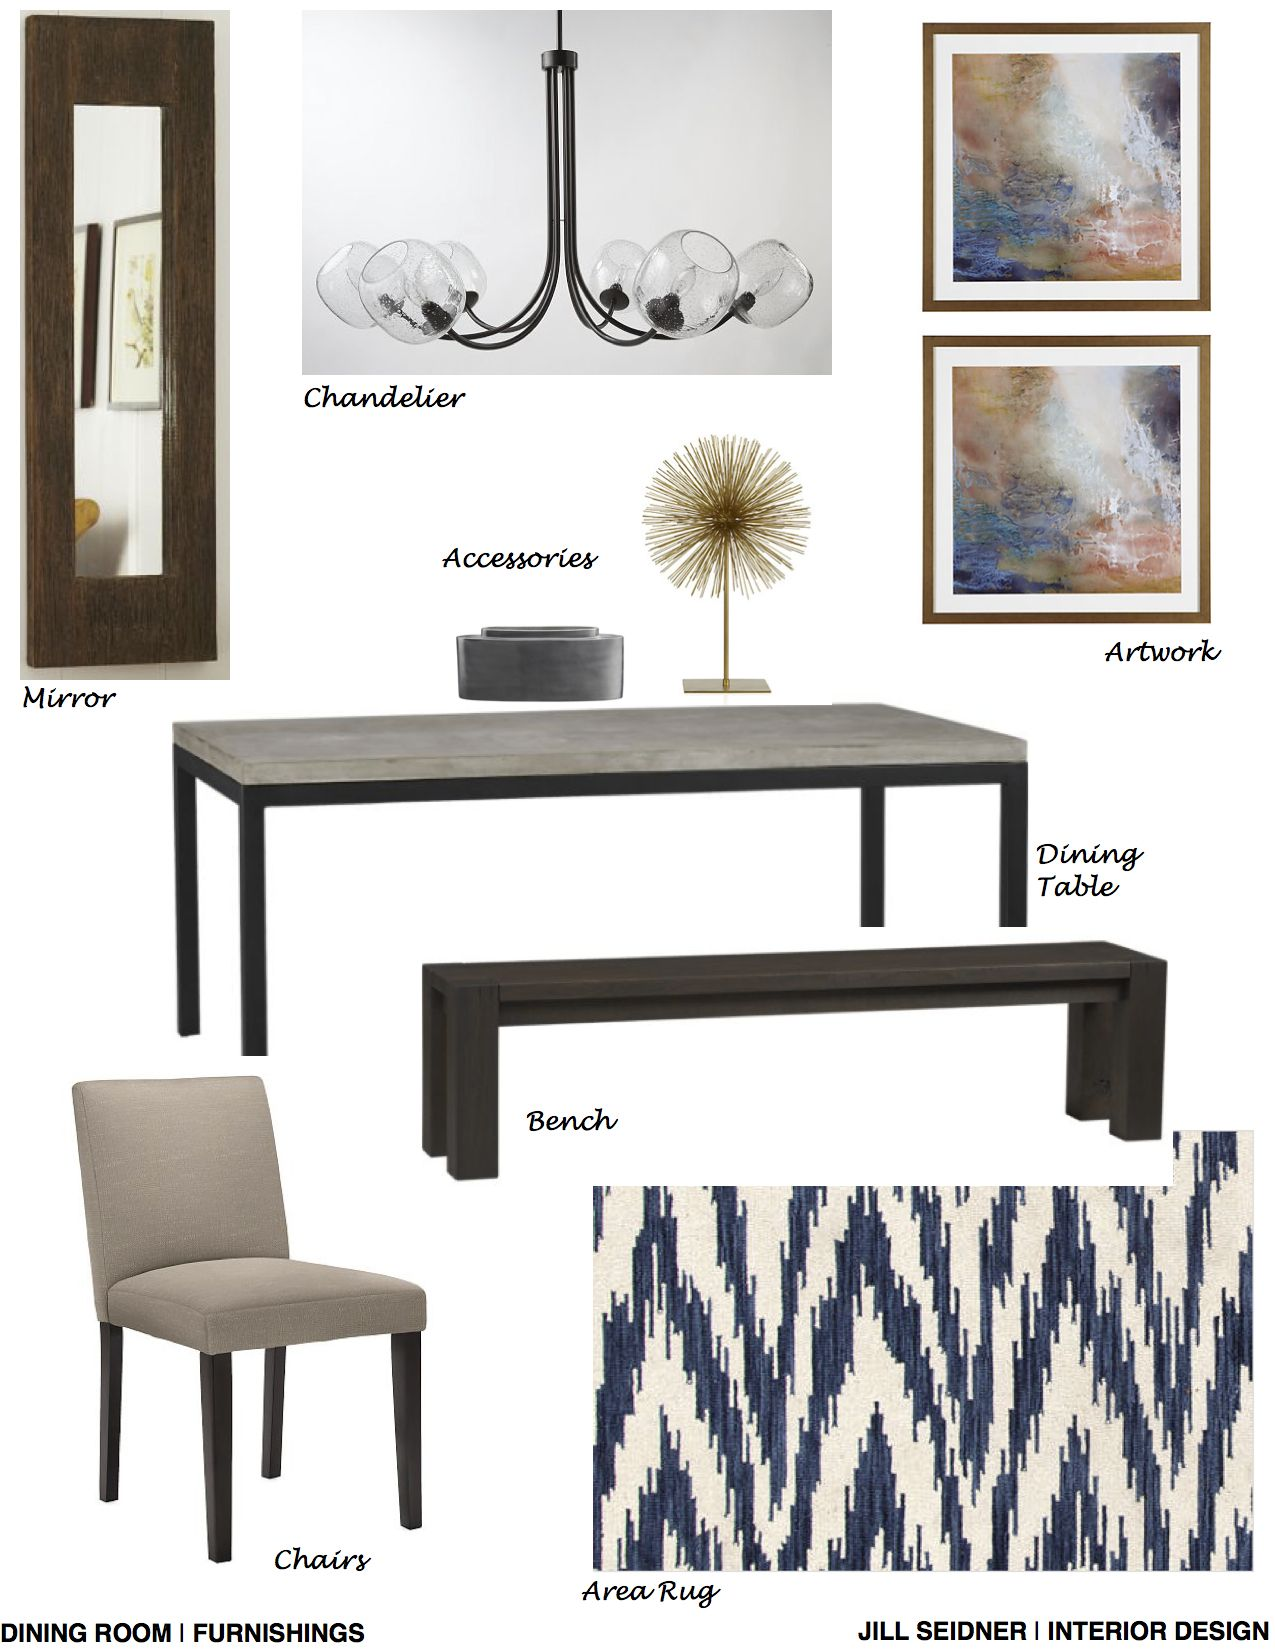 South Pasadena CA Residence Online Design Project Dining Room